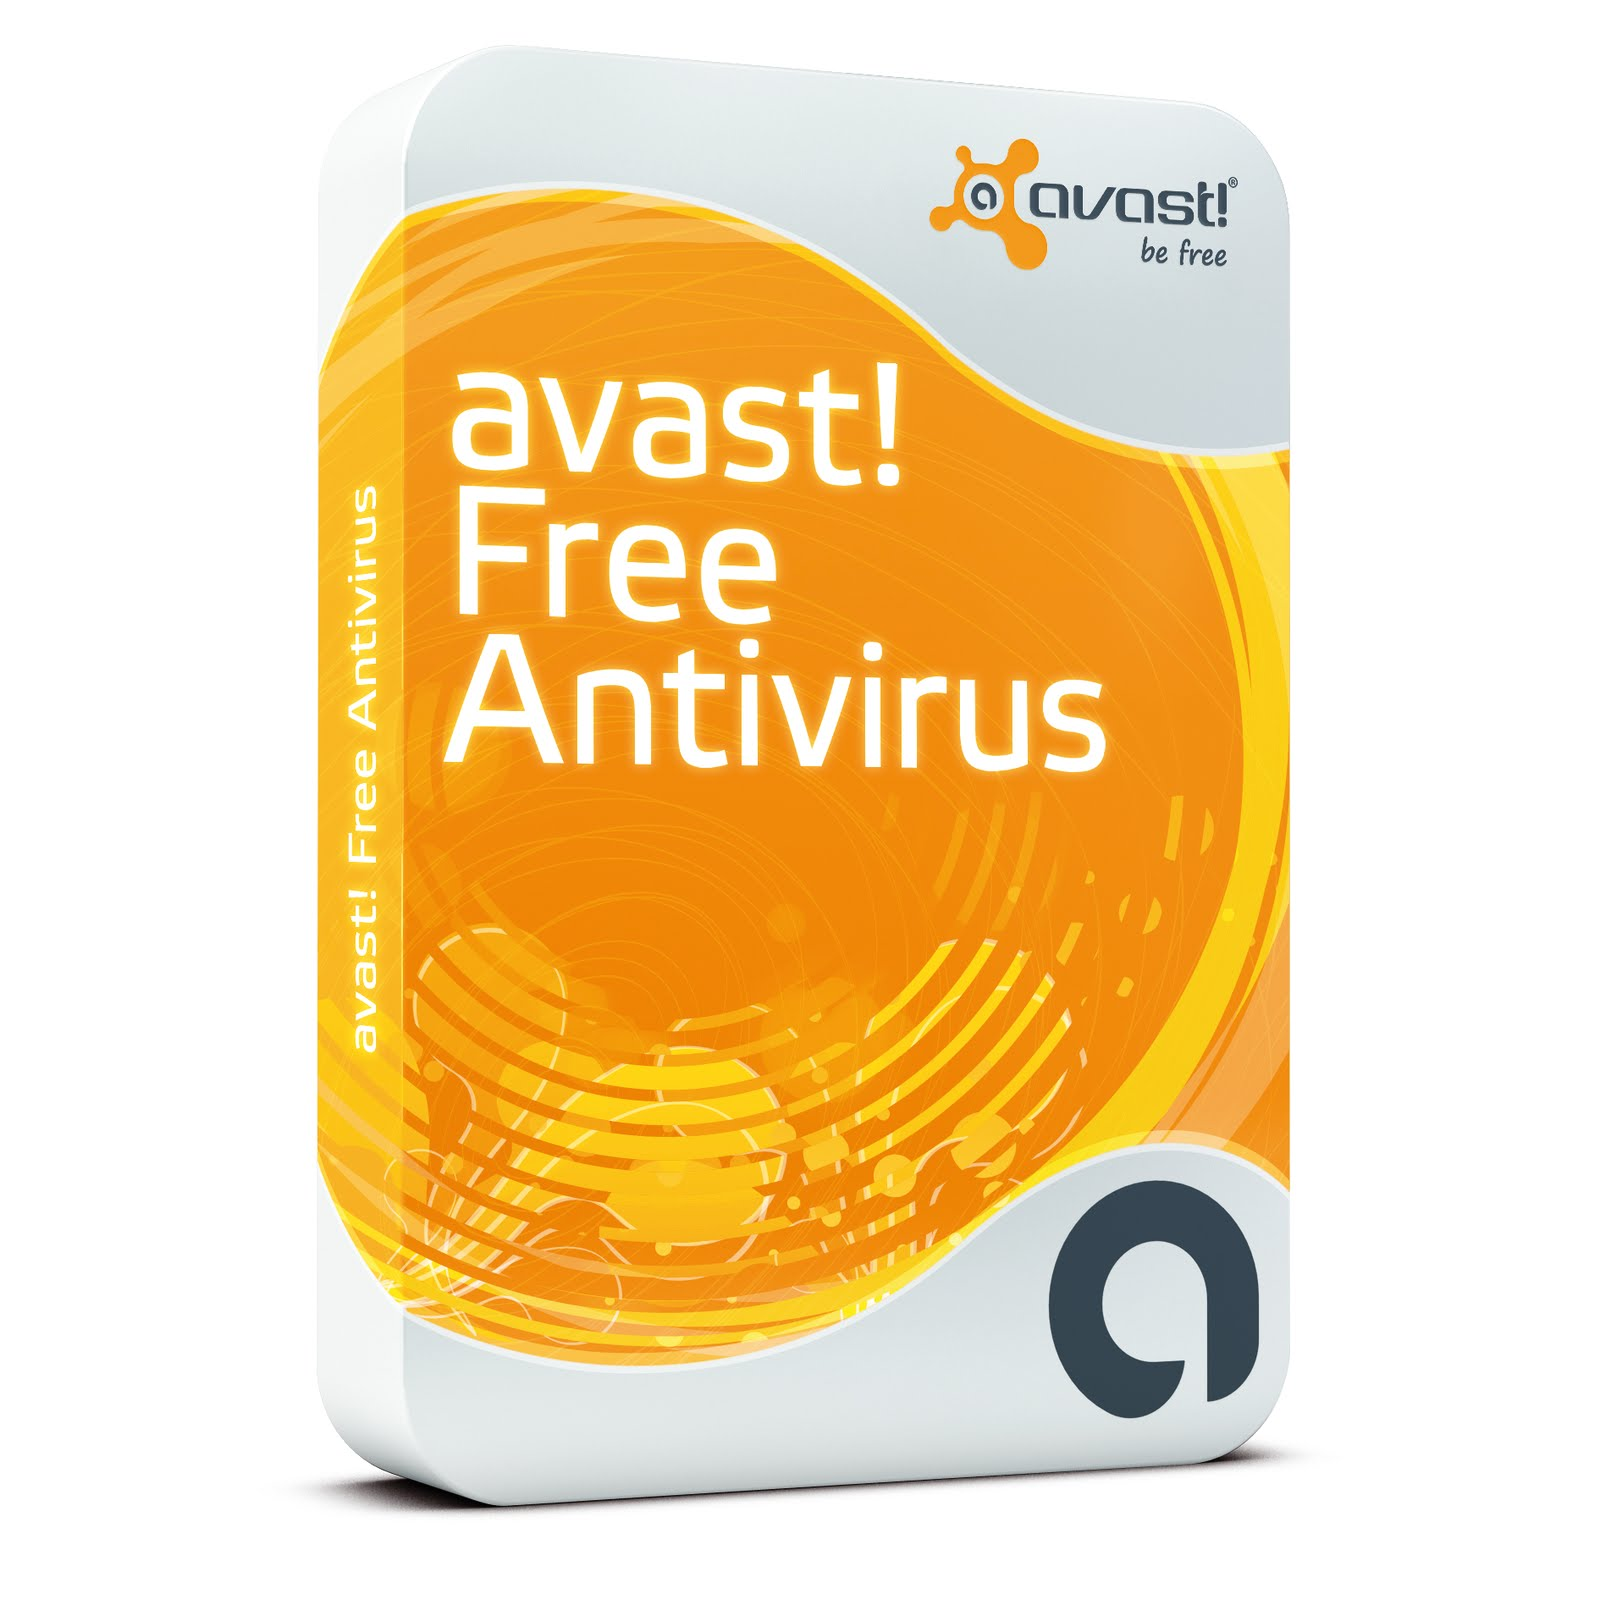 HHMZZ: Download Avast! Free Antivirus Latest Version 7.0 ...